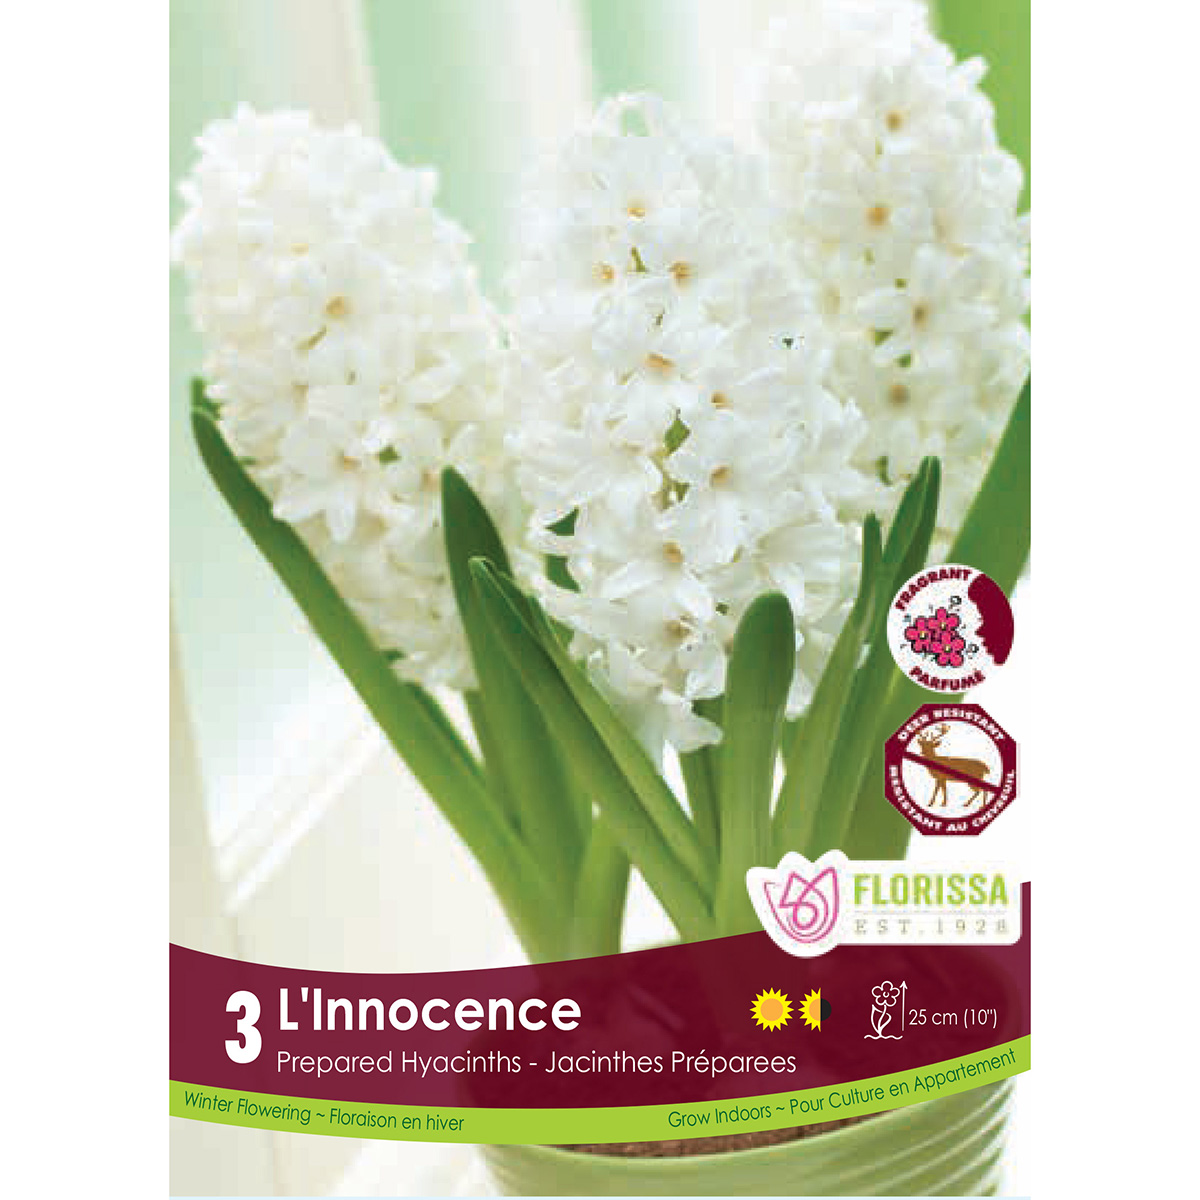 Prepared Hyacinth 'L'Innocence' Bulbs